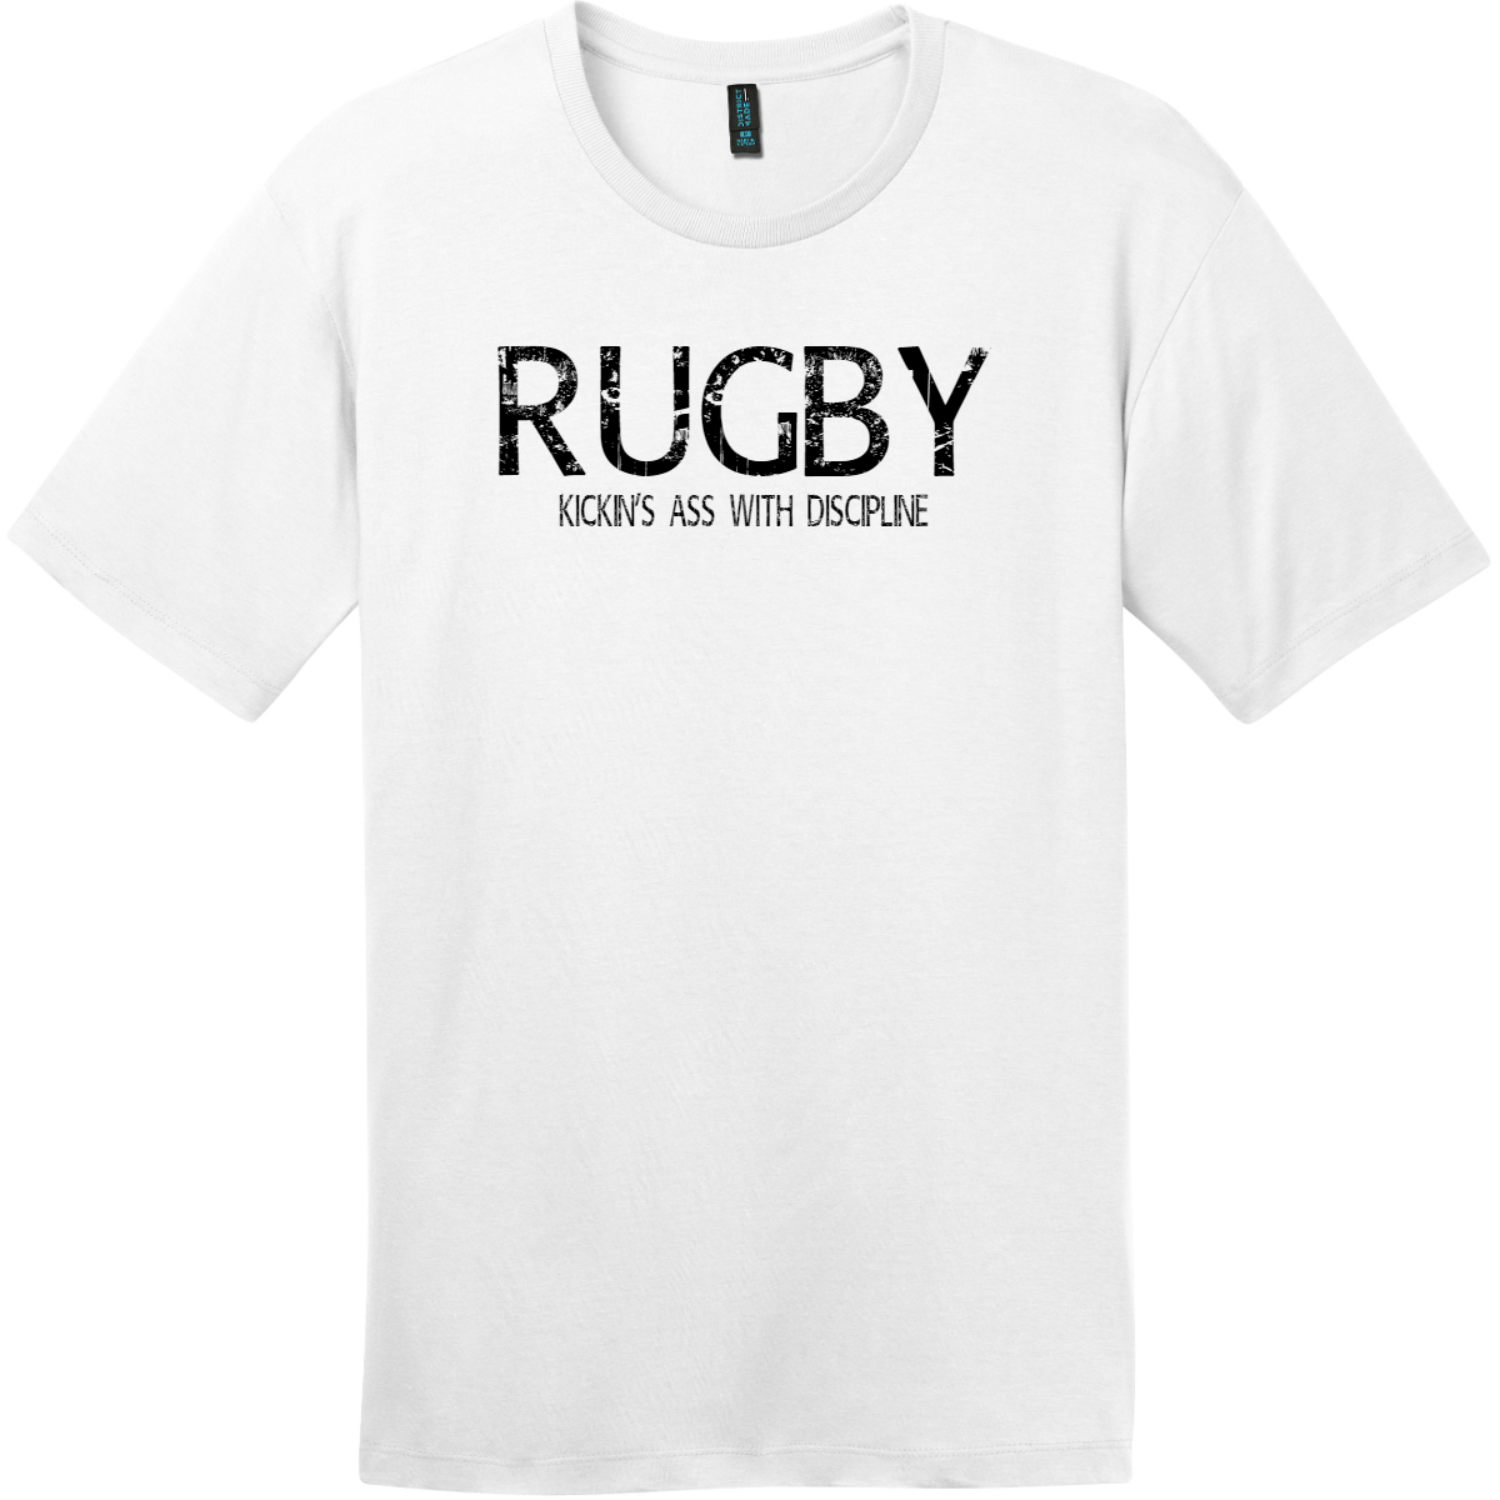 Rugby Kickin Ass With Discipline T-Shirt Bright White District Perfect Weight Tee DT104